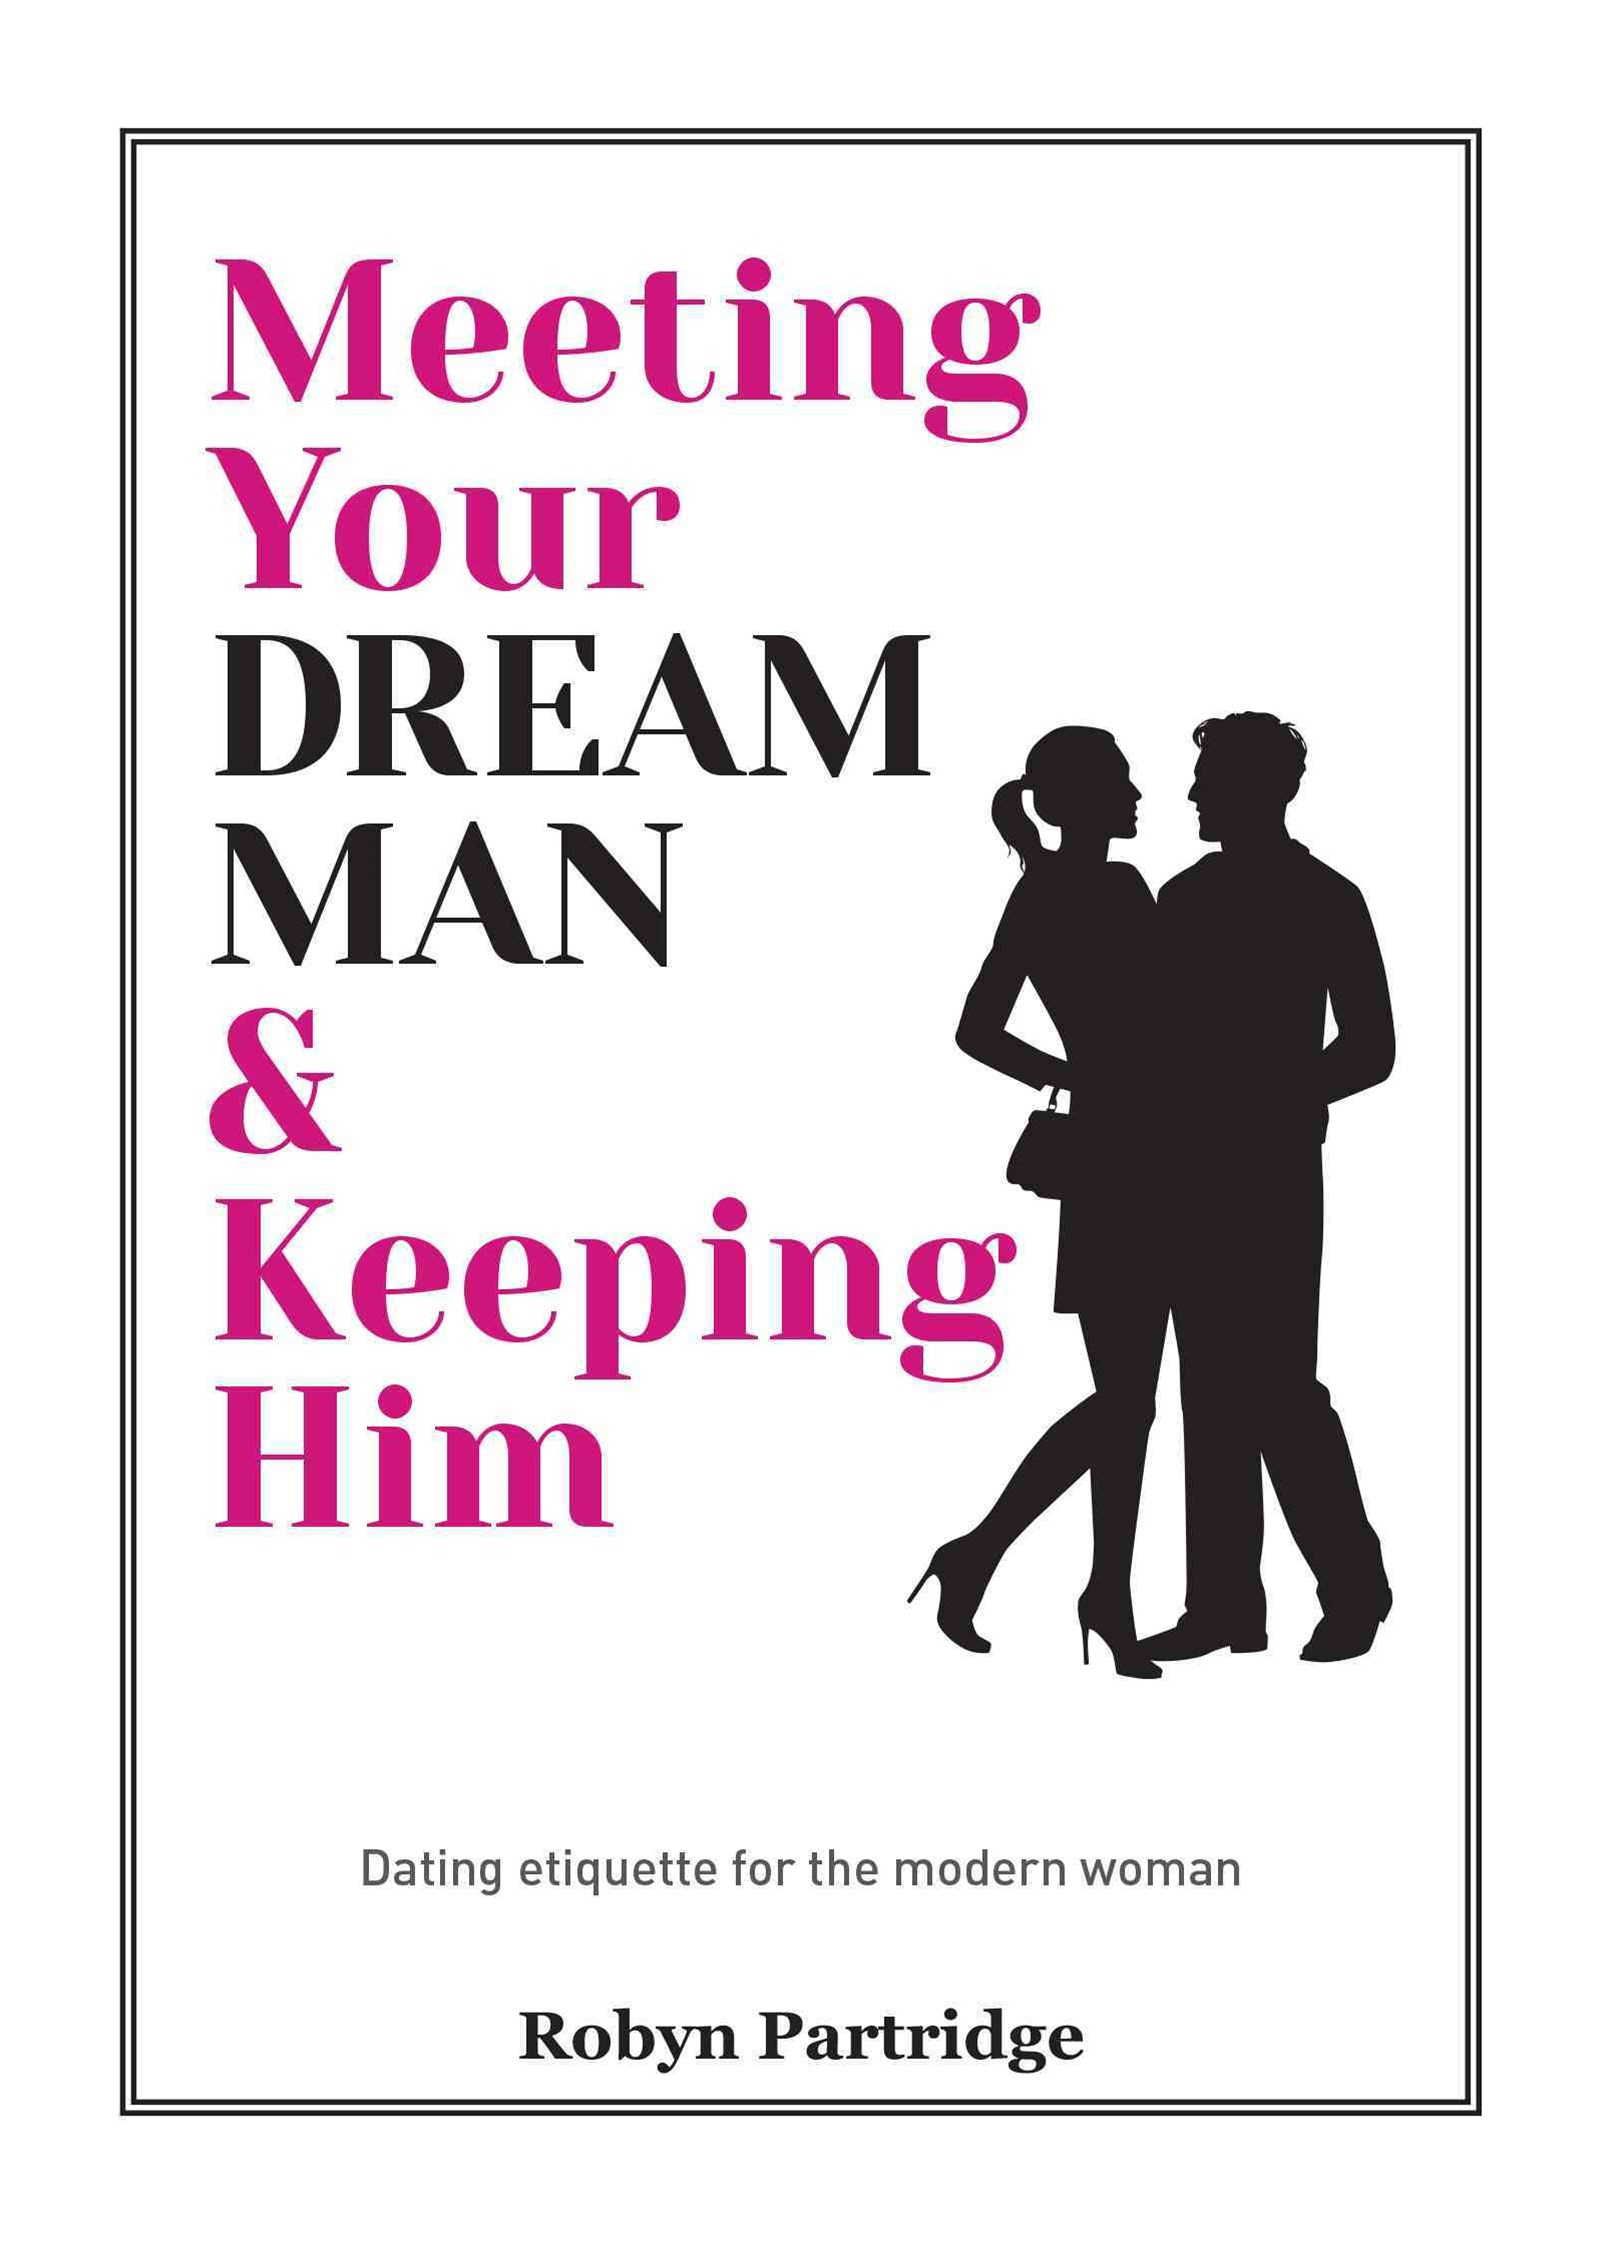 Meeting Your Dream Man and Kee